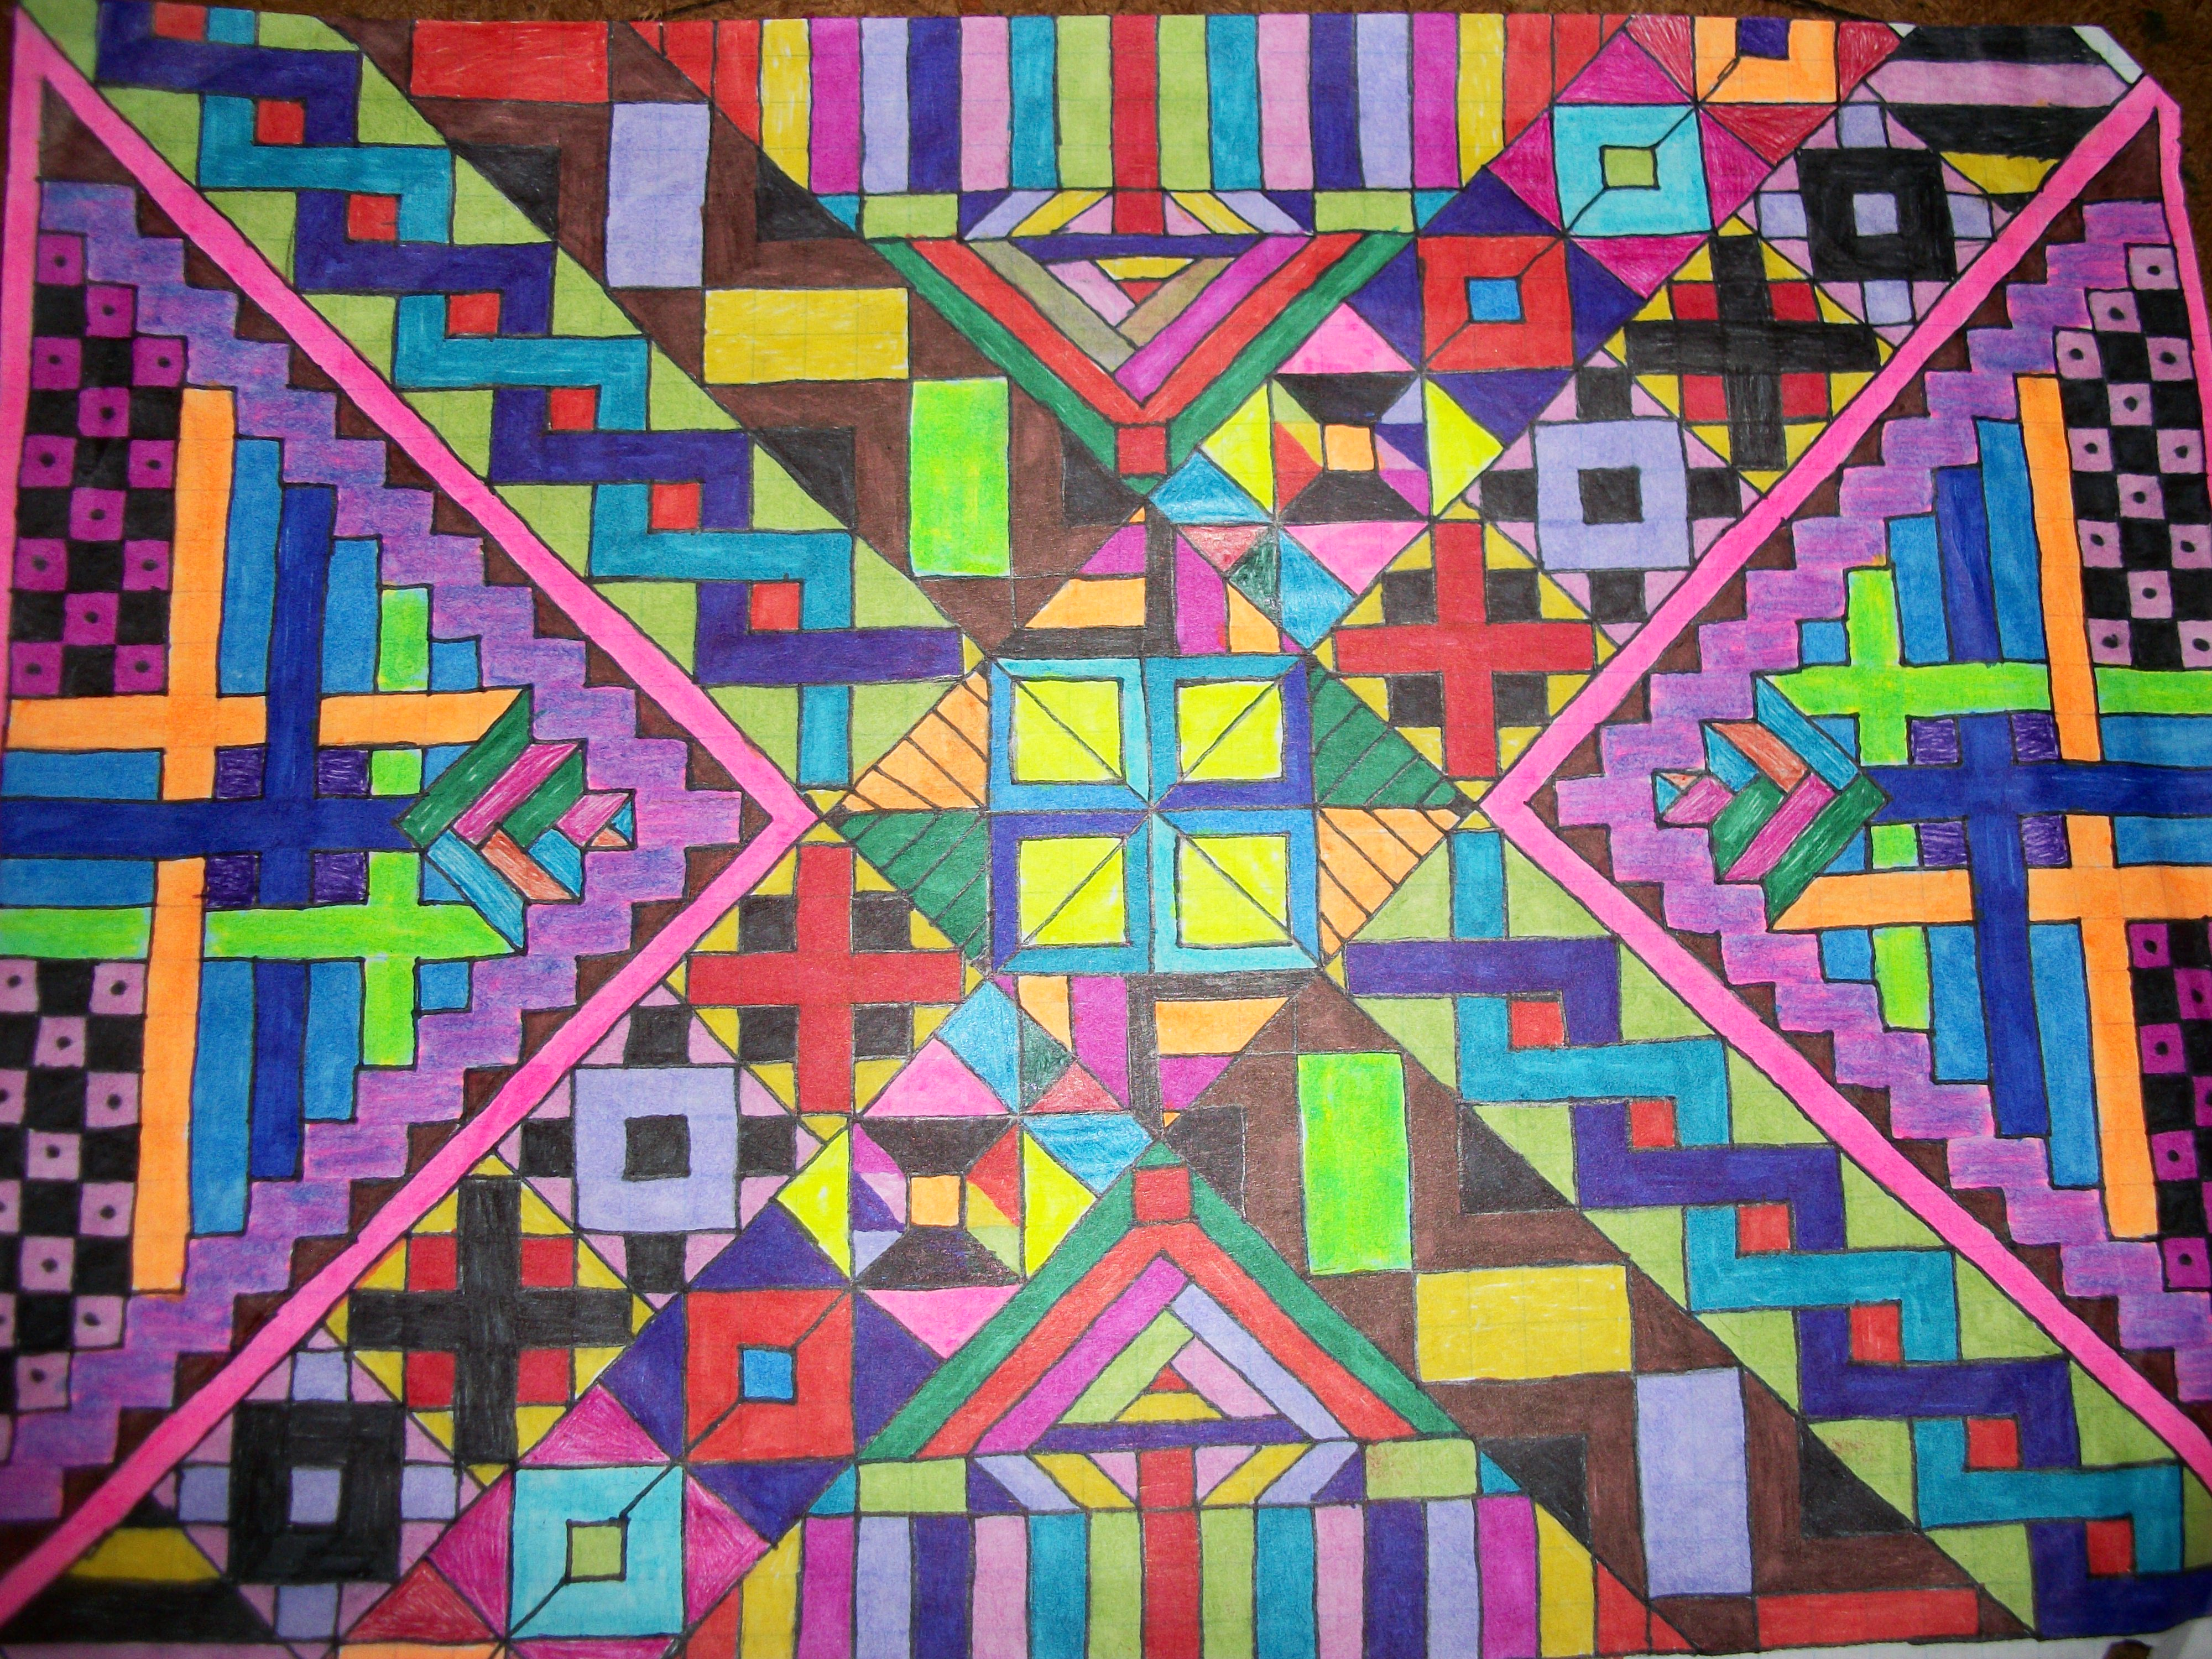 Tribal patterns graph paper art 4 by lyla amnethyst on for Cool designs on paper